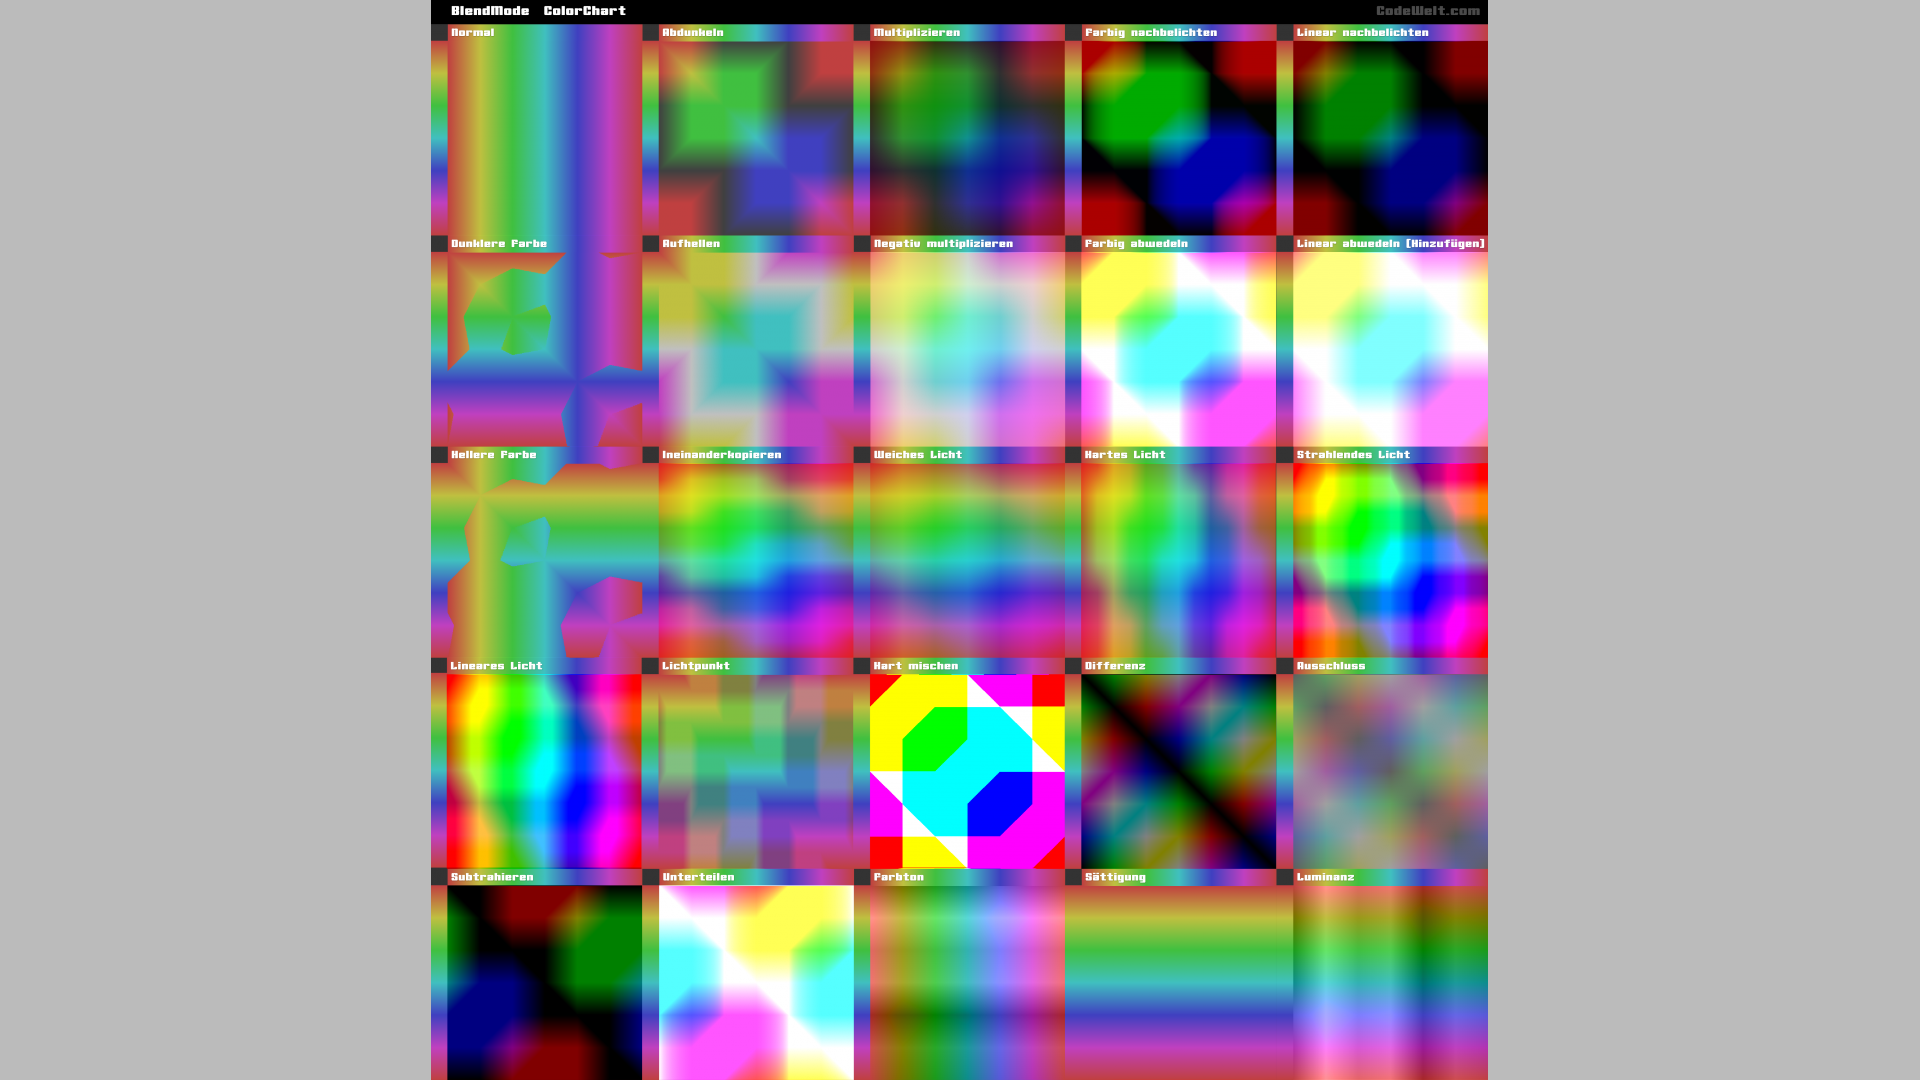 blendmode-spectrum-colorchart-ebenen-blende-optionen-de.png